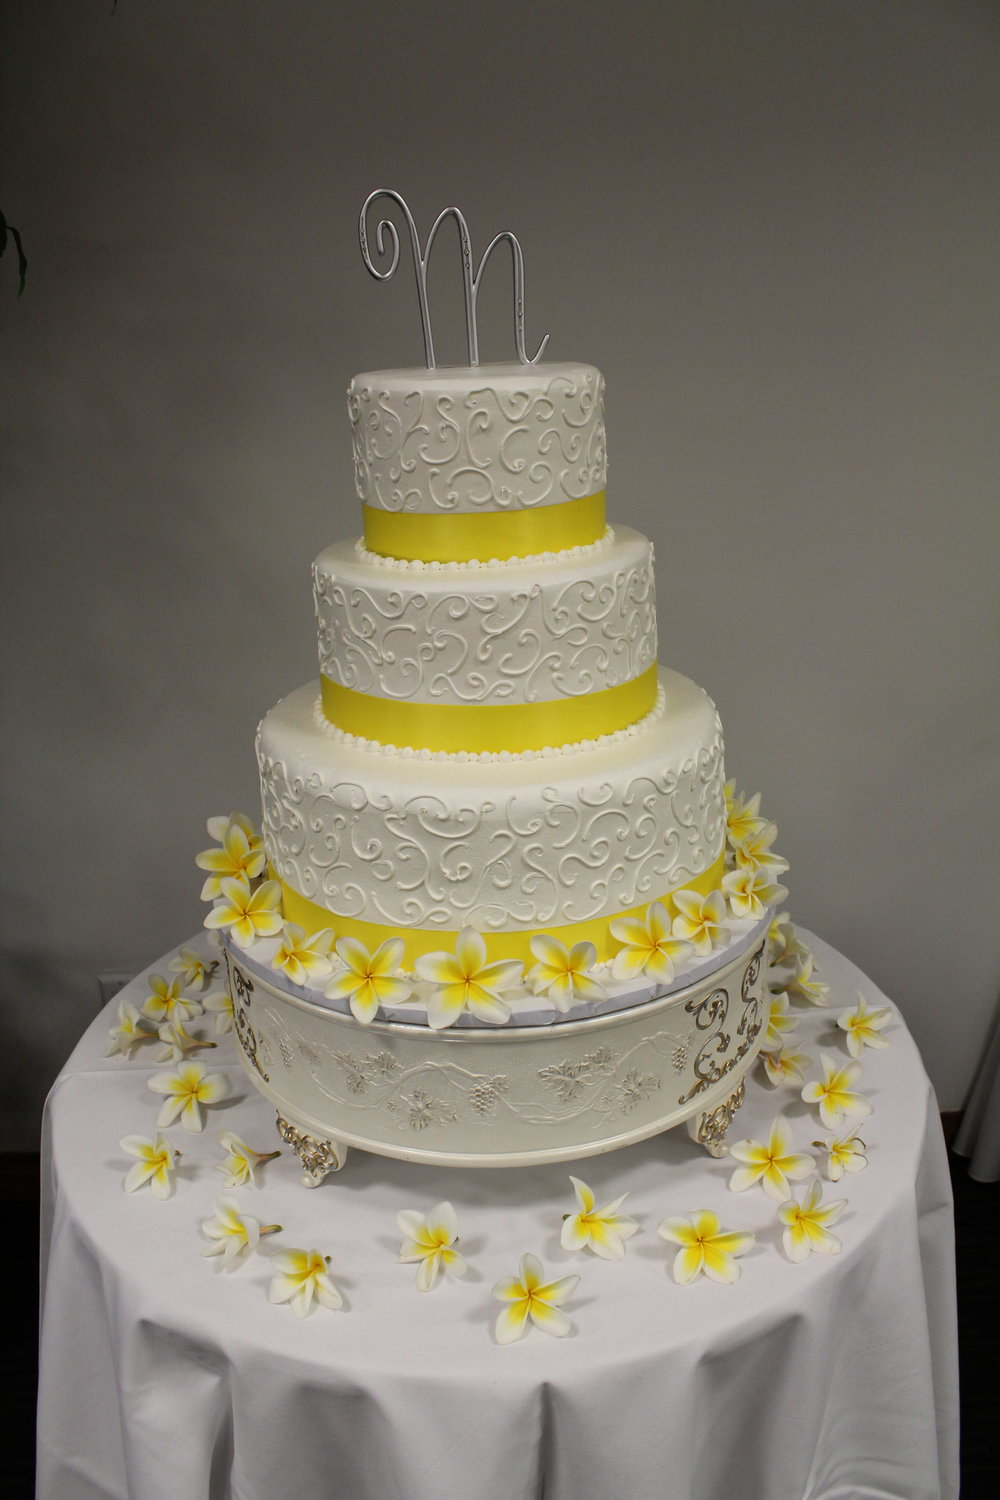 Cake by King's Hawaiian Bakery in Torrance, California